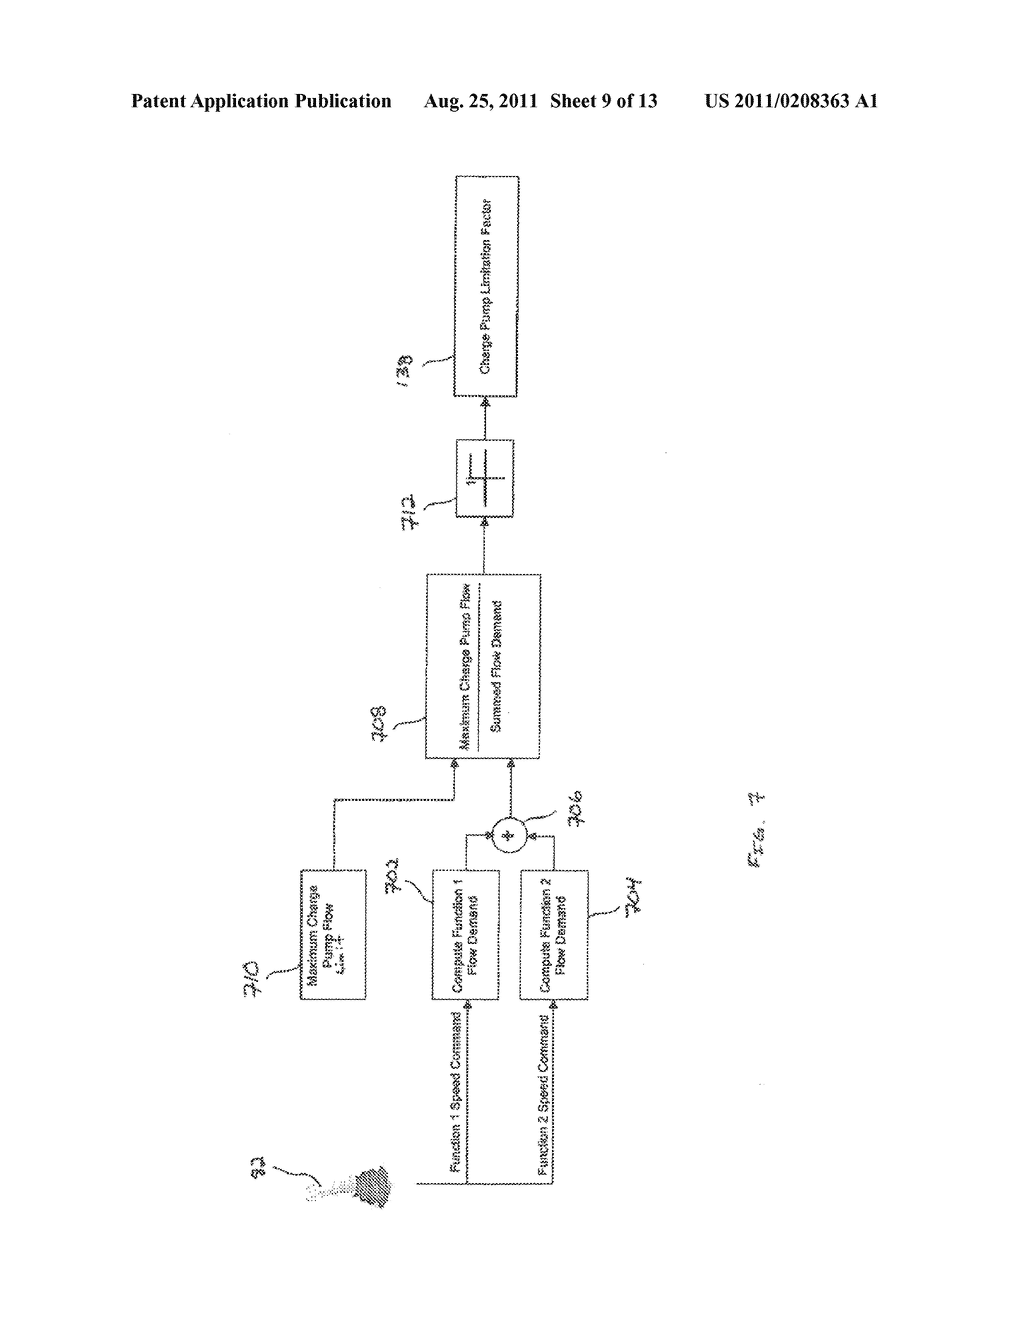 Actuator Schematic Diagram Wiring Library Method Of Controlling An Electro Hydraulic System Having Multiple Actuators